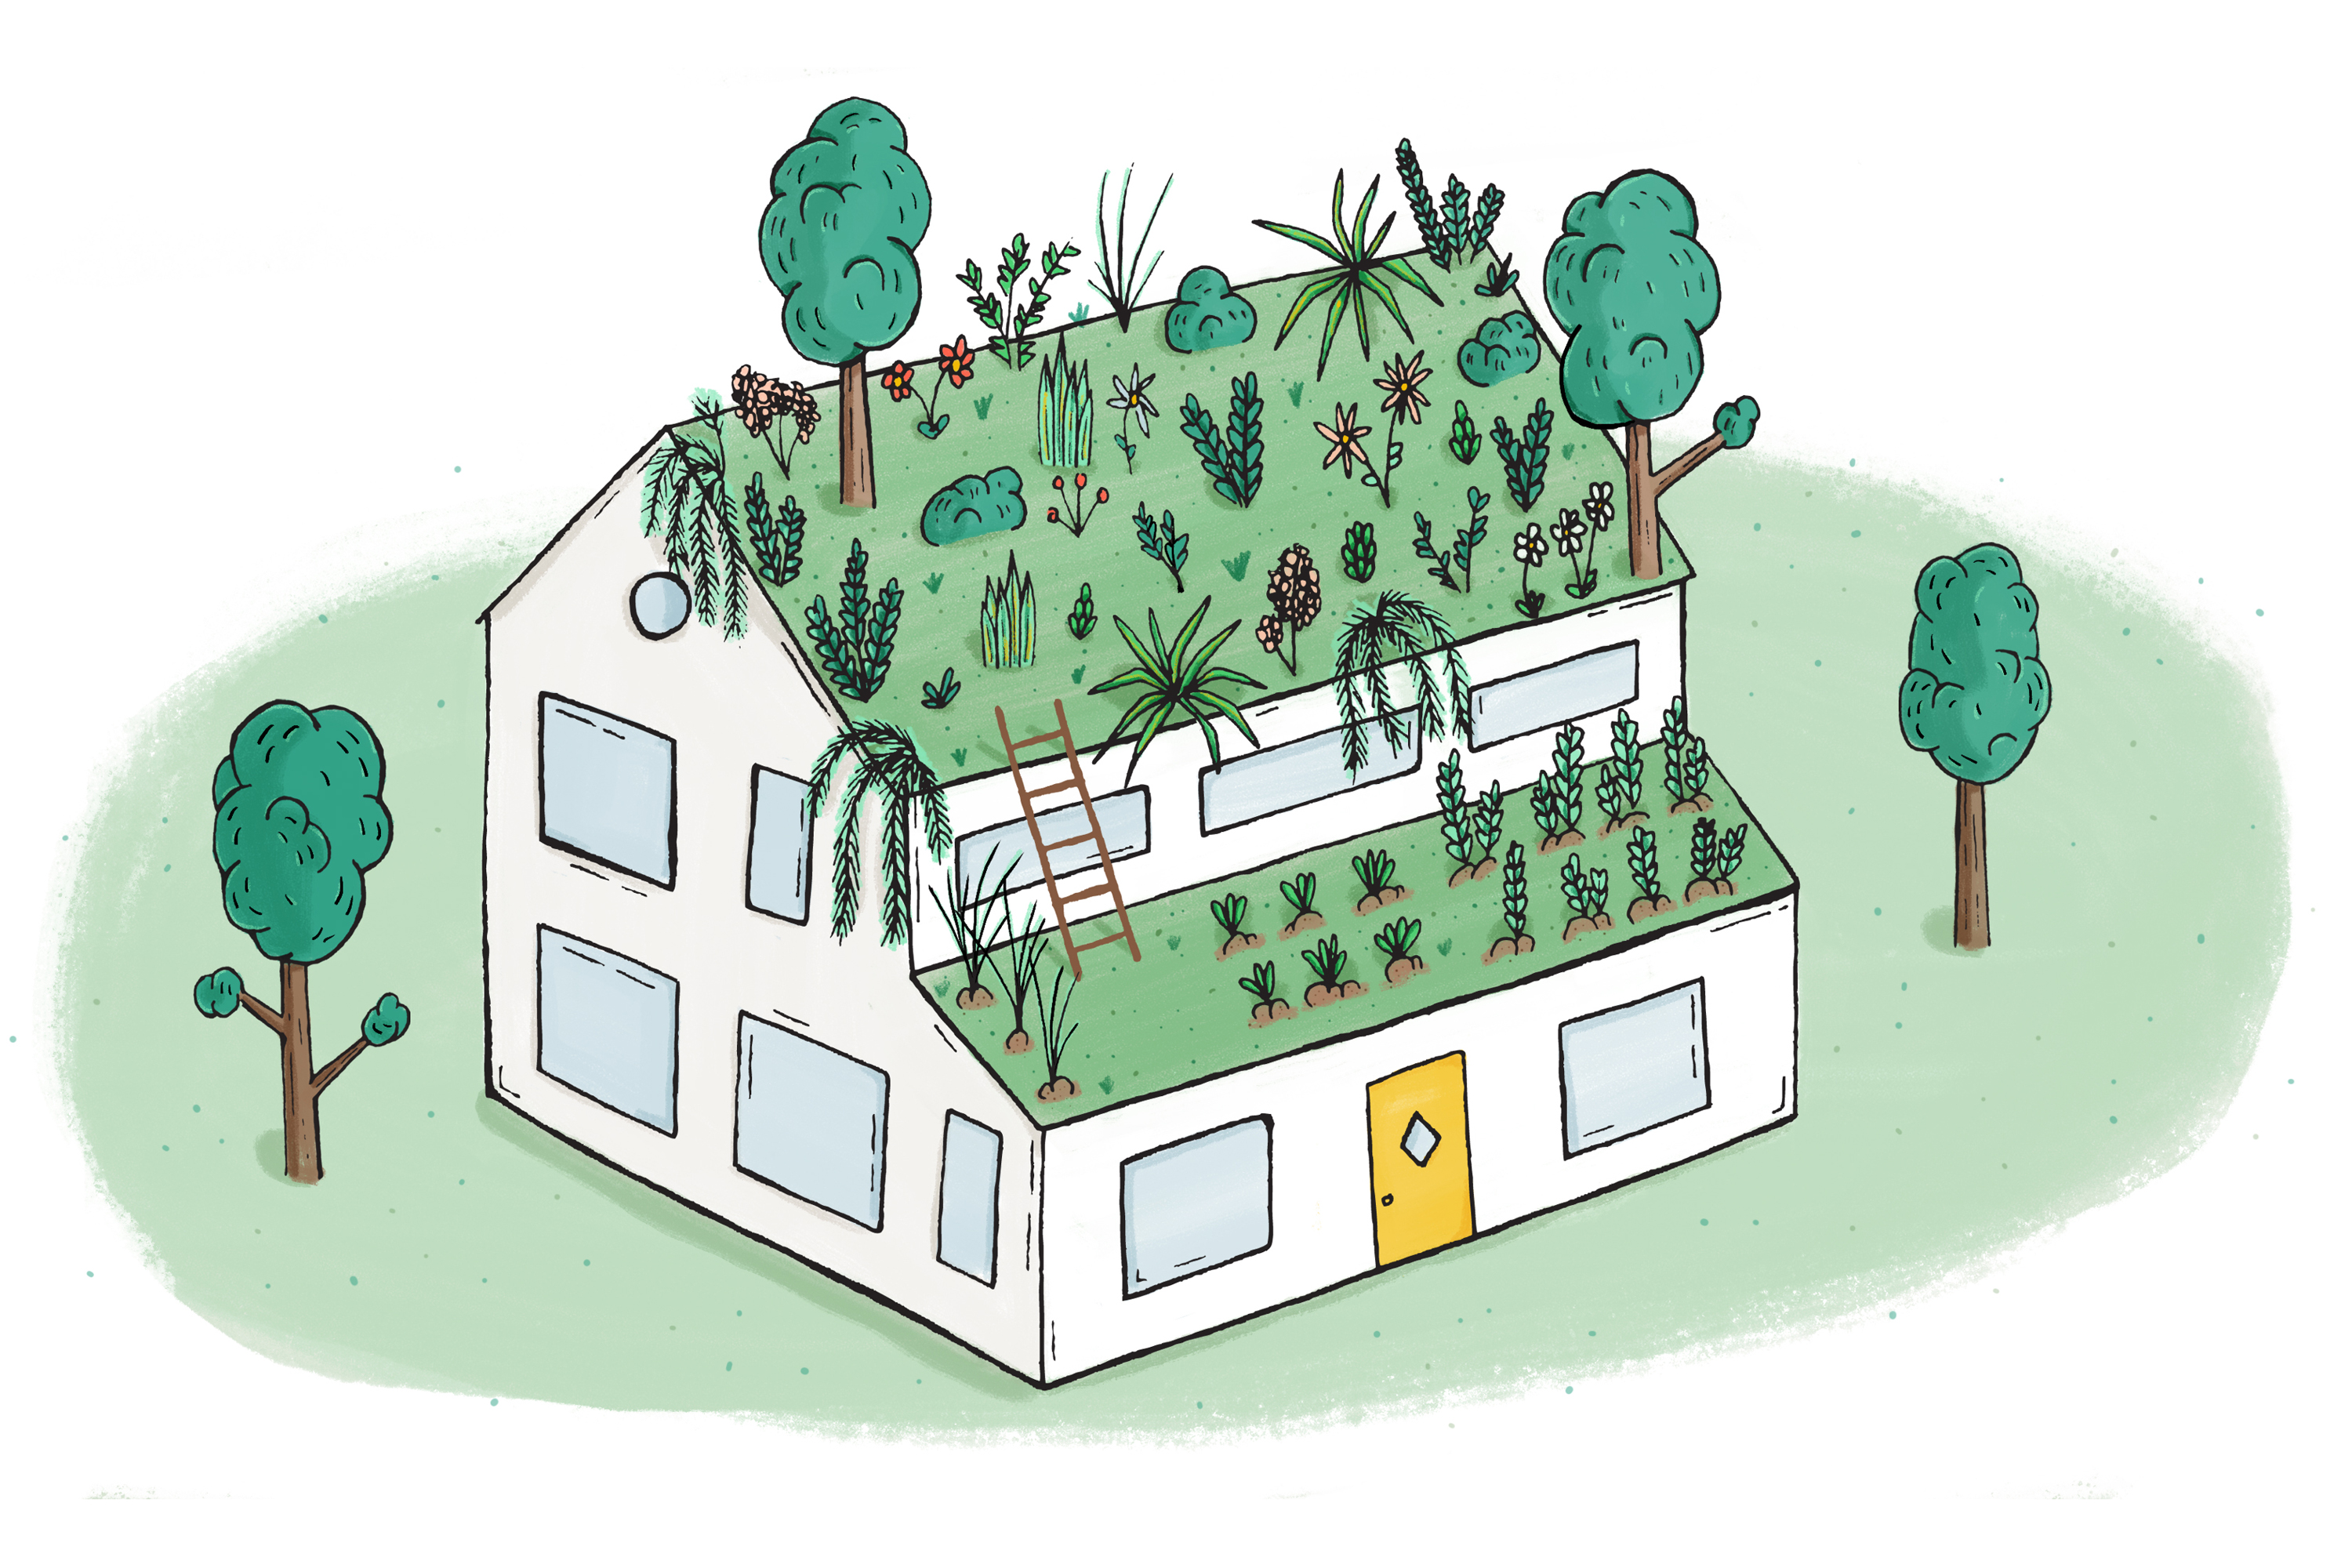 An illustration of a white house with trees, grass, and flowers growing out of its roof.